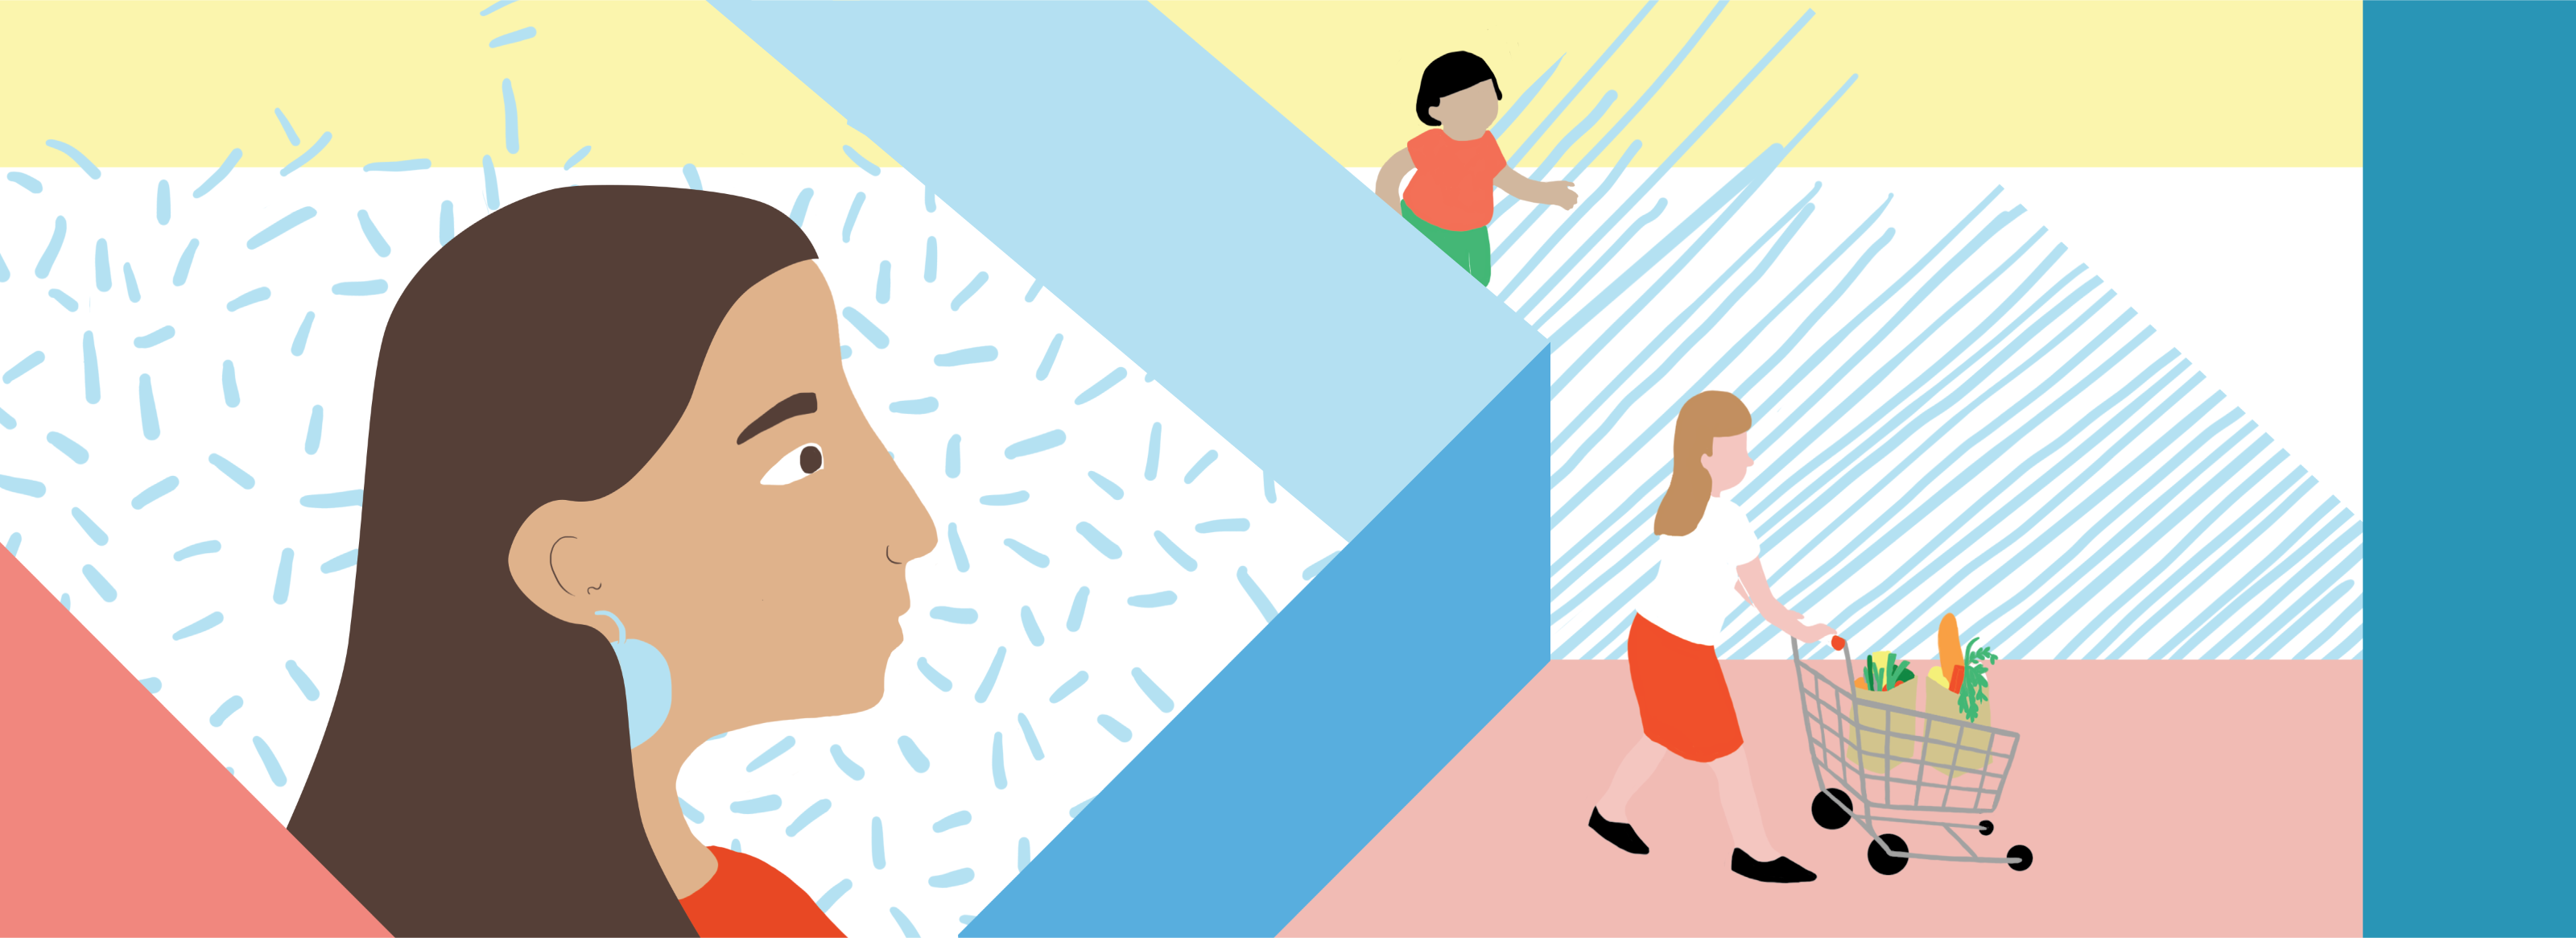 Illustration extracted from the cover the of Health Systems Scenarios report.